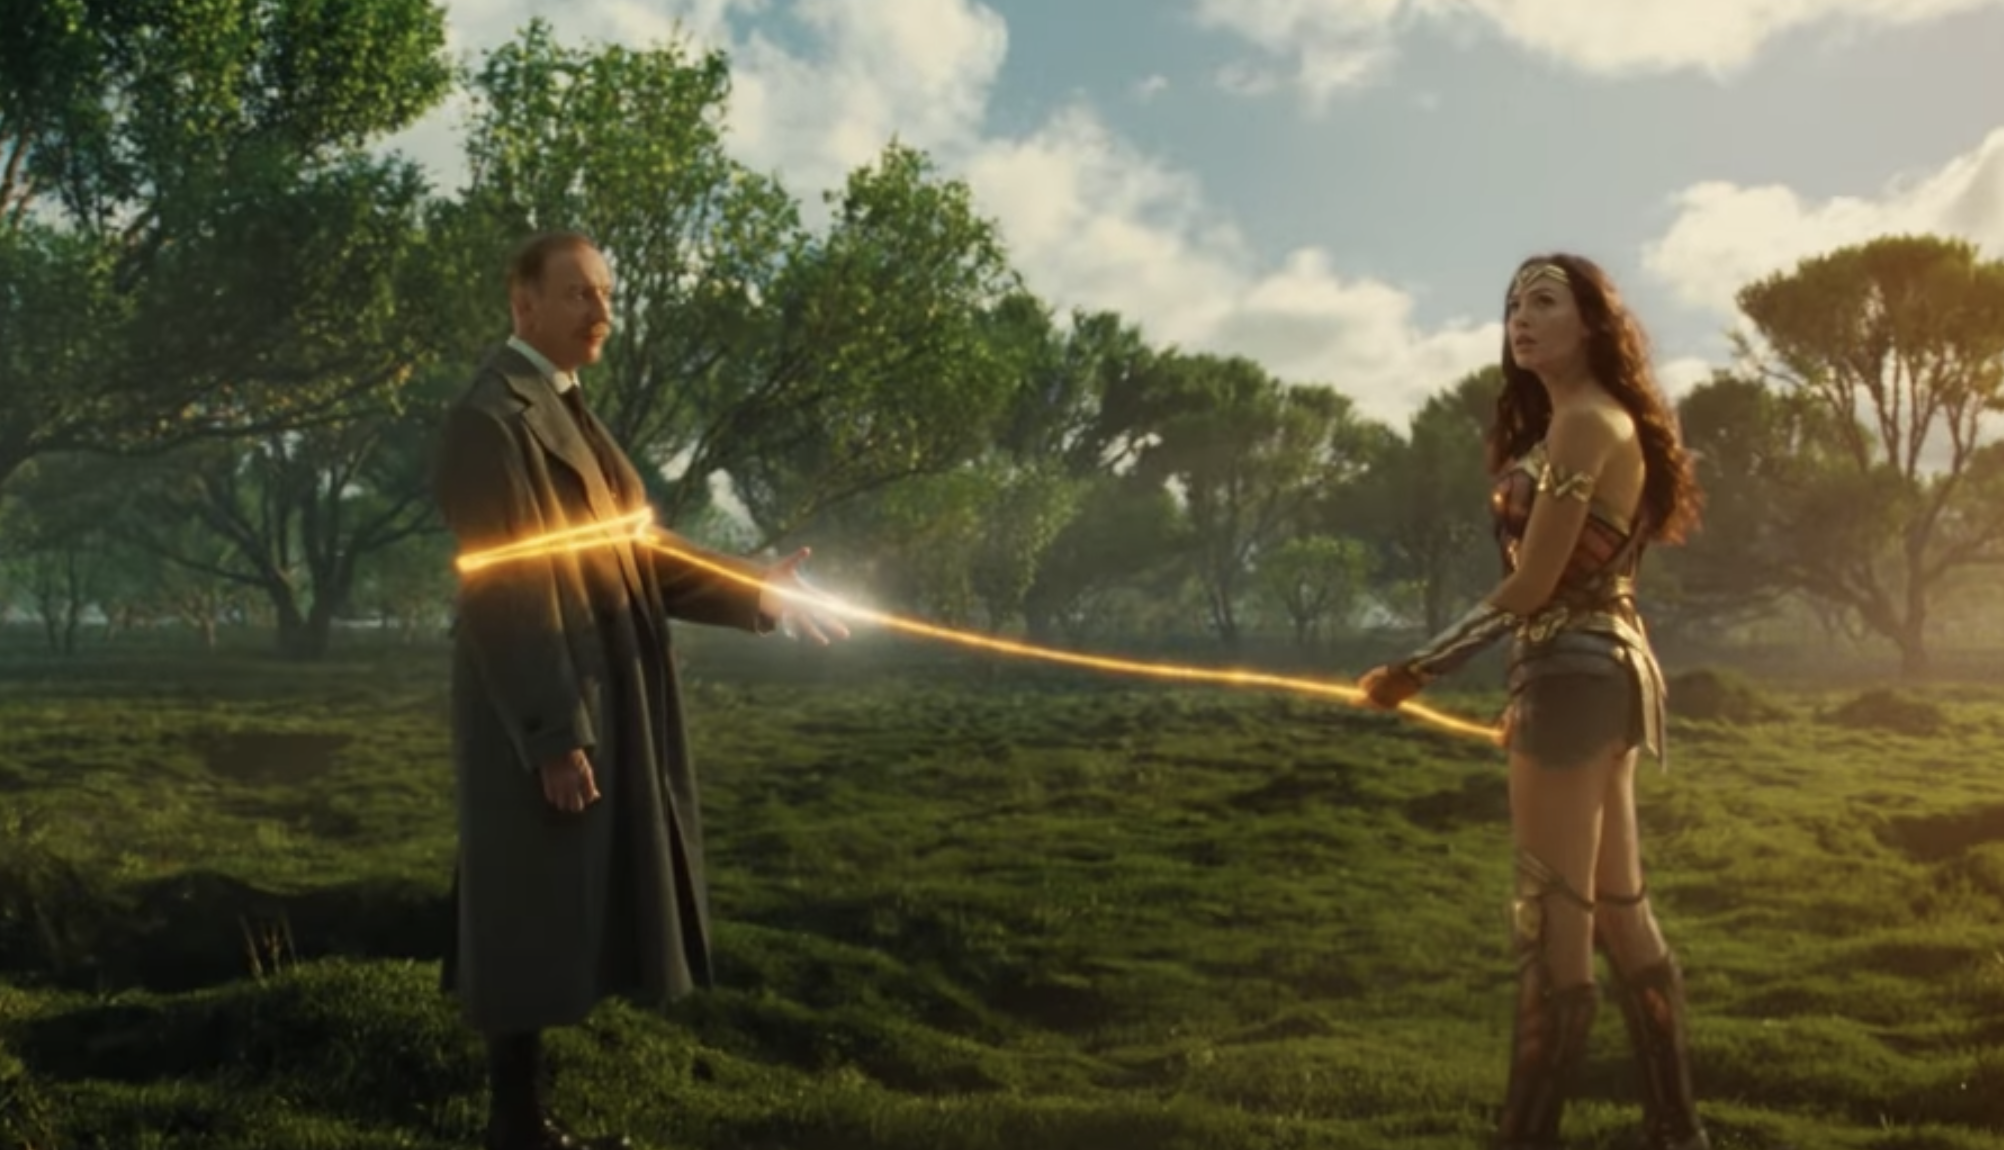 Wonder Woman with her lasso around Ares in a field